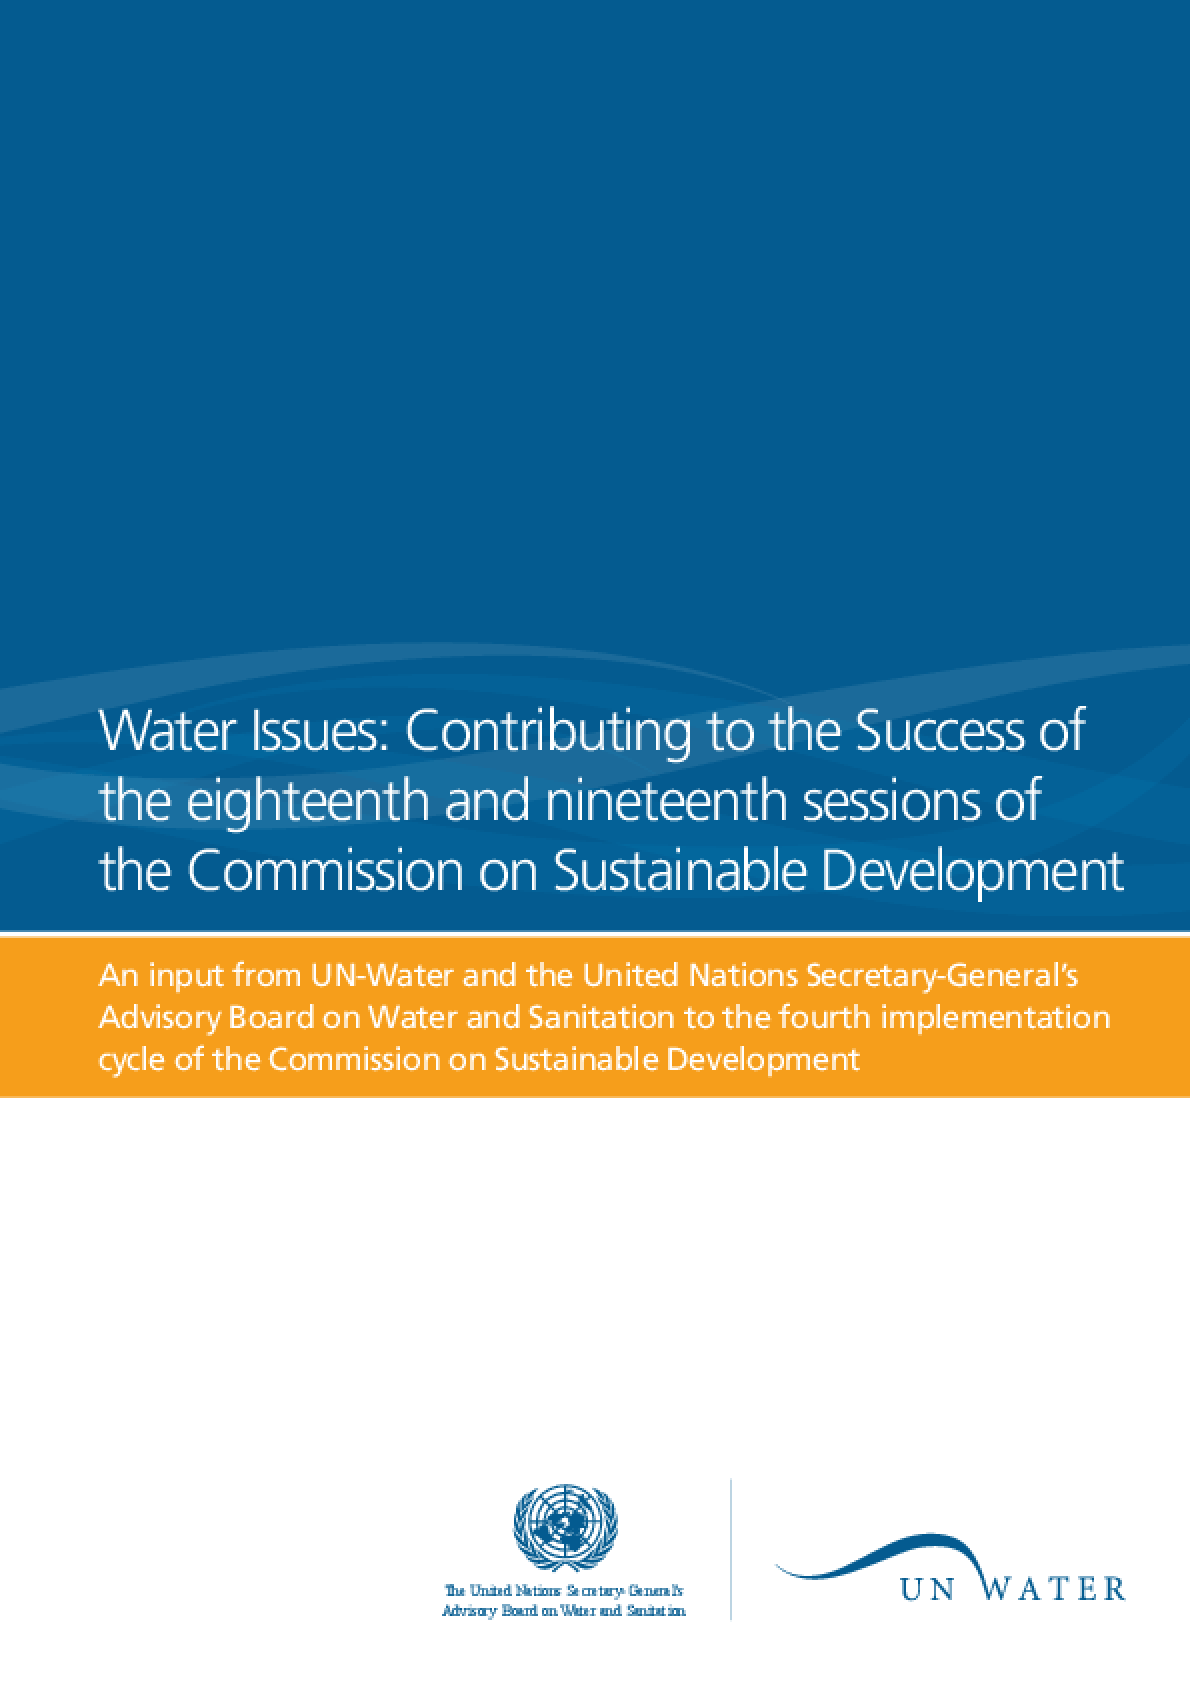 Water Issues: Contributing to the Success of the Eighteenth and Nineteenth Sessions of the Commission on Sustainable Development